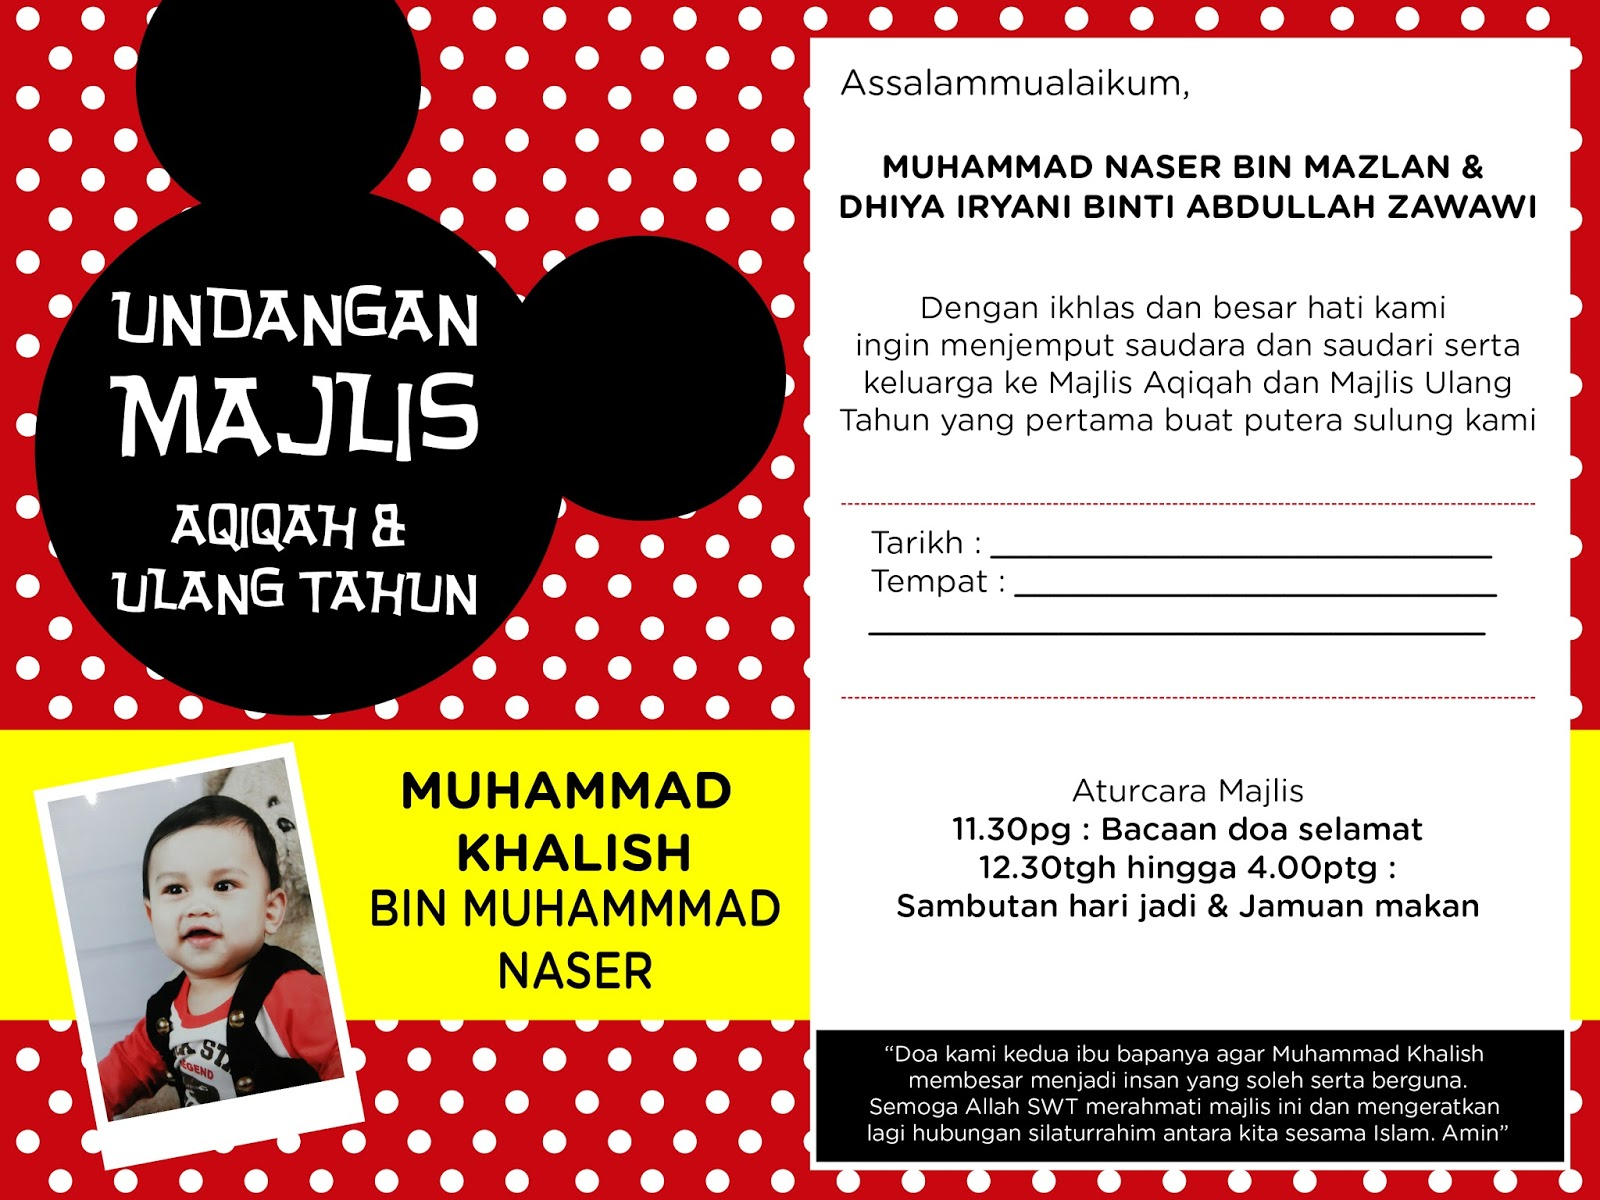 Majlis aqiqah birthday party invitation card design ora adzlin majlis aqiqah birthday party invitation card design stopboris Image collections